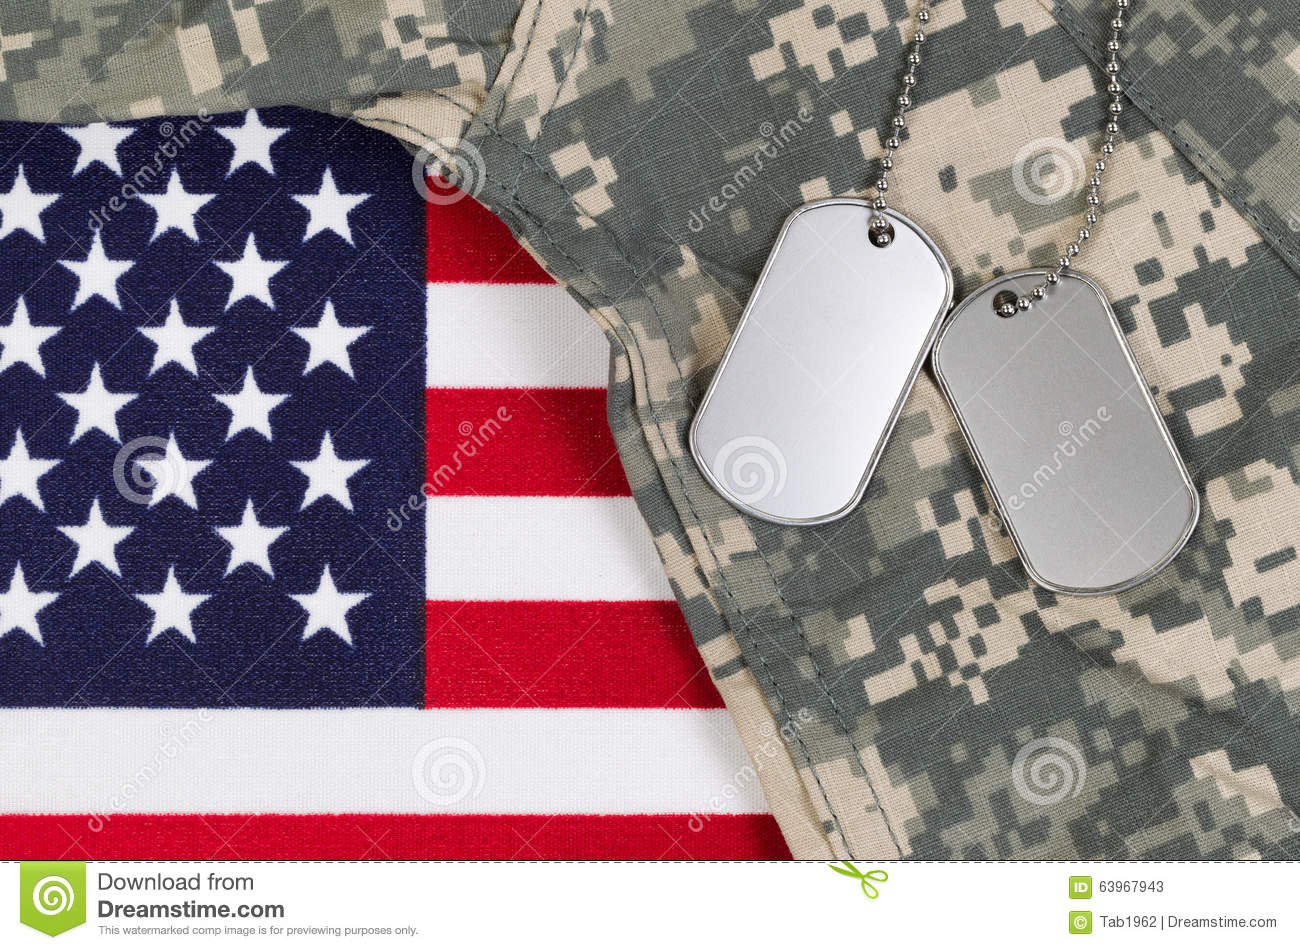 00a7ff296d65 Flag of the United States of America with military identification tags,  neck chain, and combat uniform top. Military service concept.